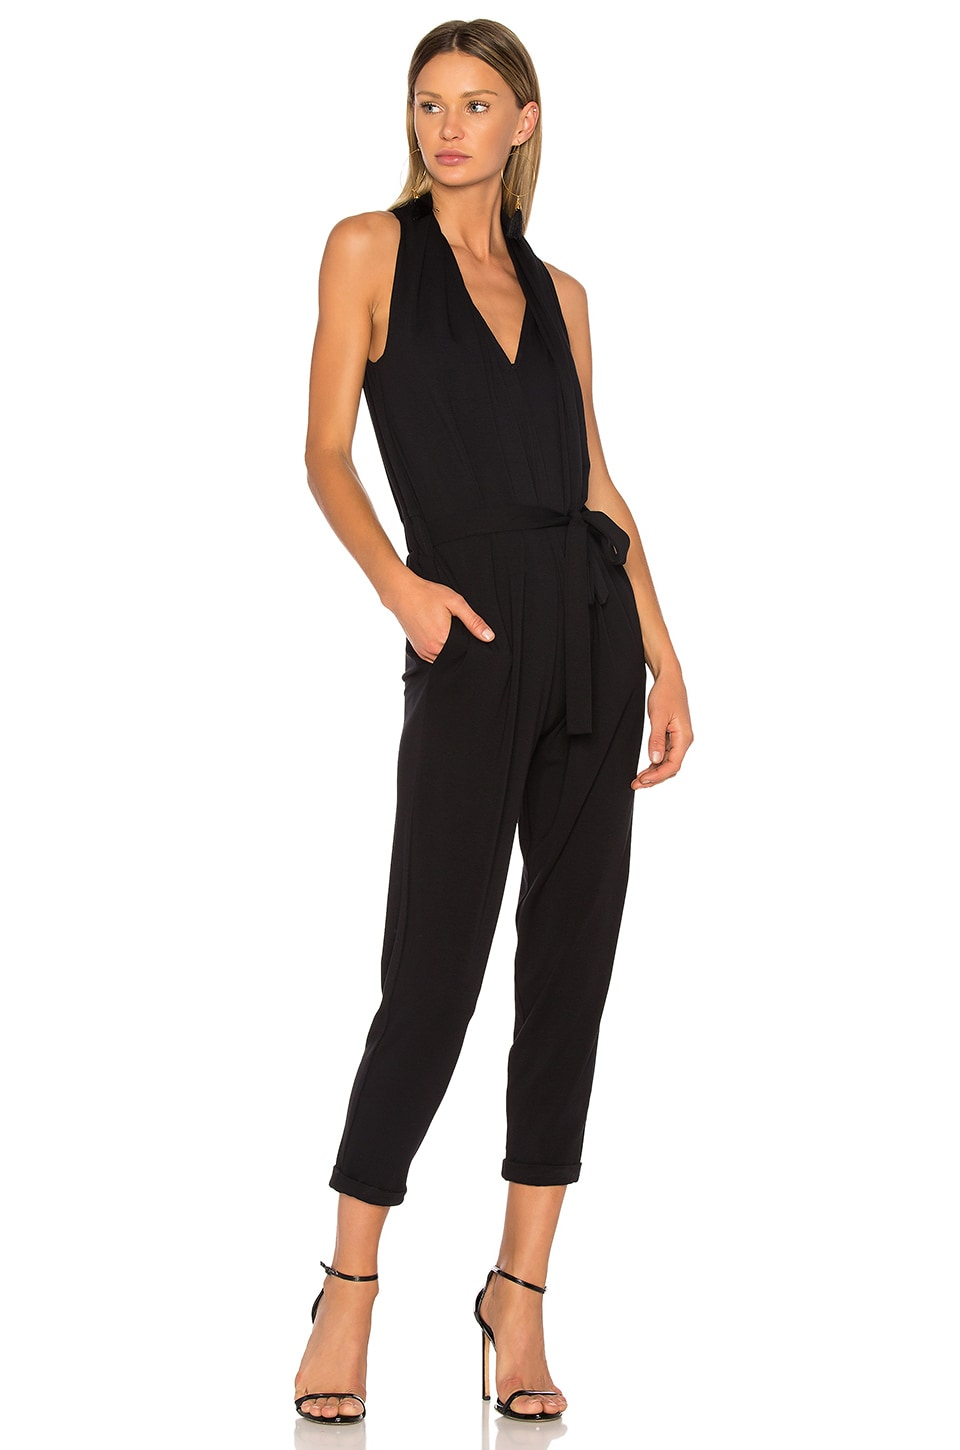 Bailey 44 Jerk Chicken Jumpsuit in Black